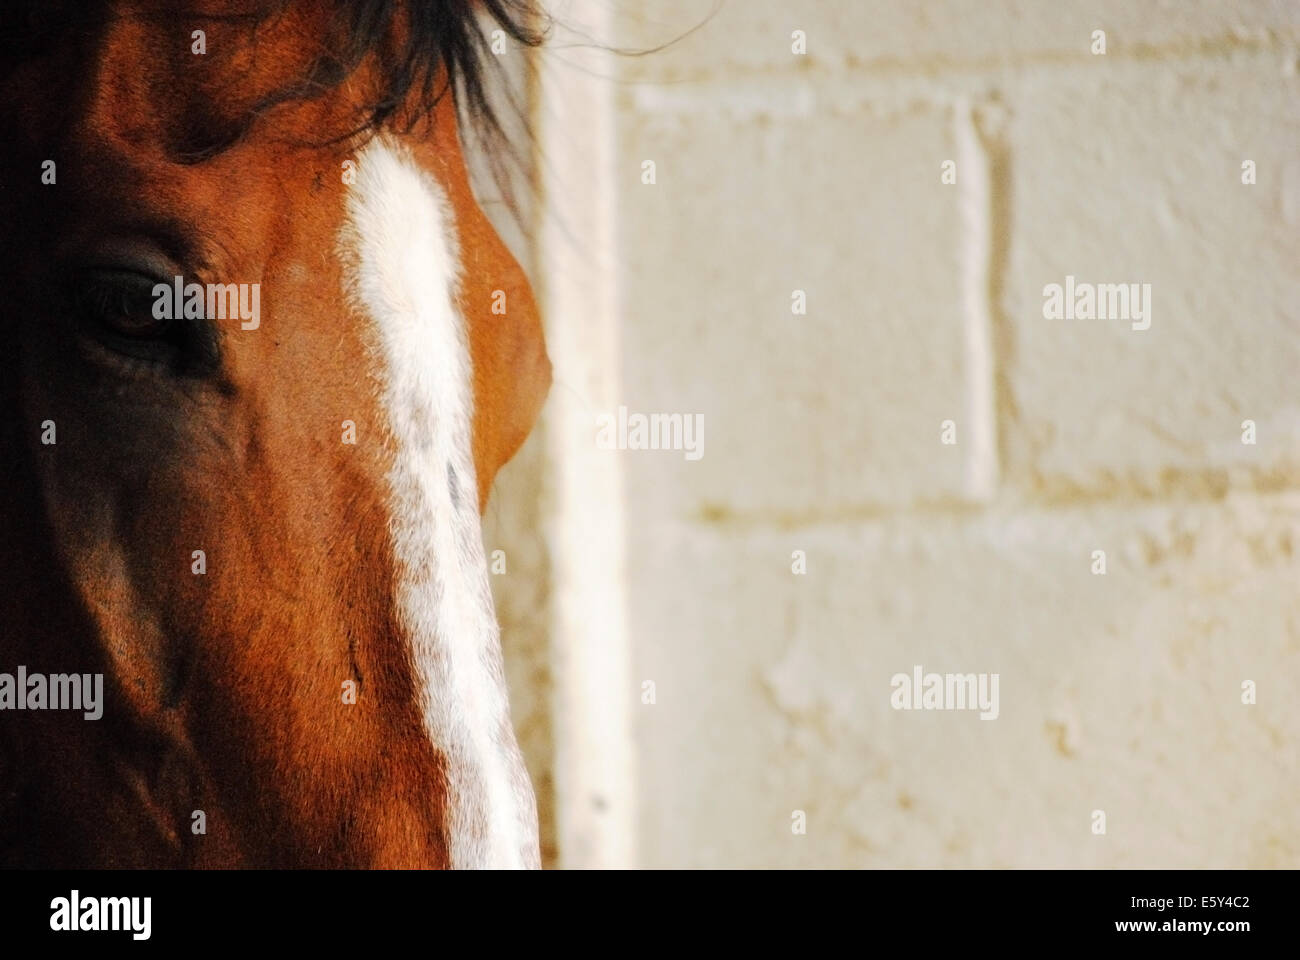 Bay horse's head with a white blaze at the left near the light gray brick wall - Stock Image